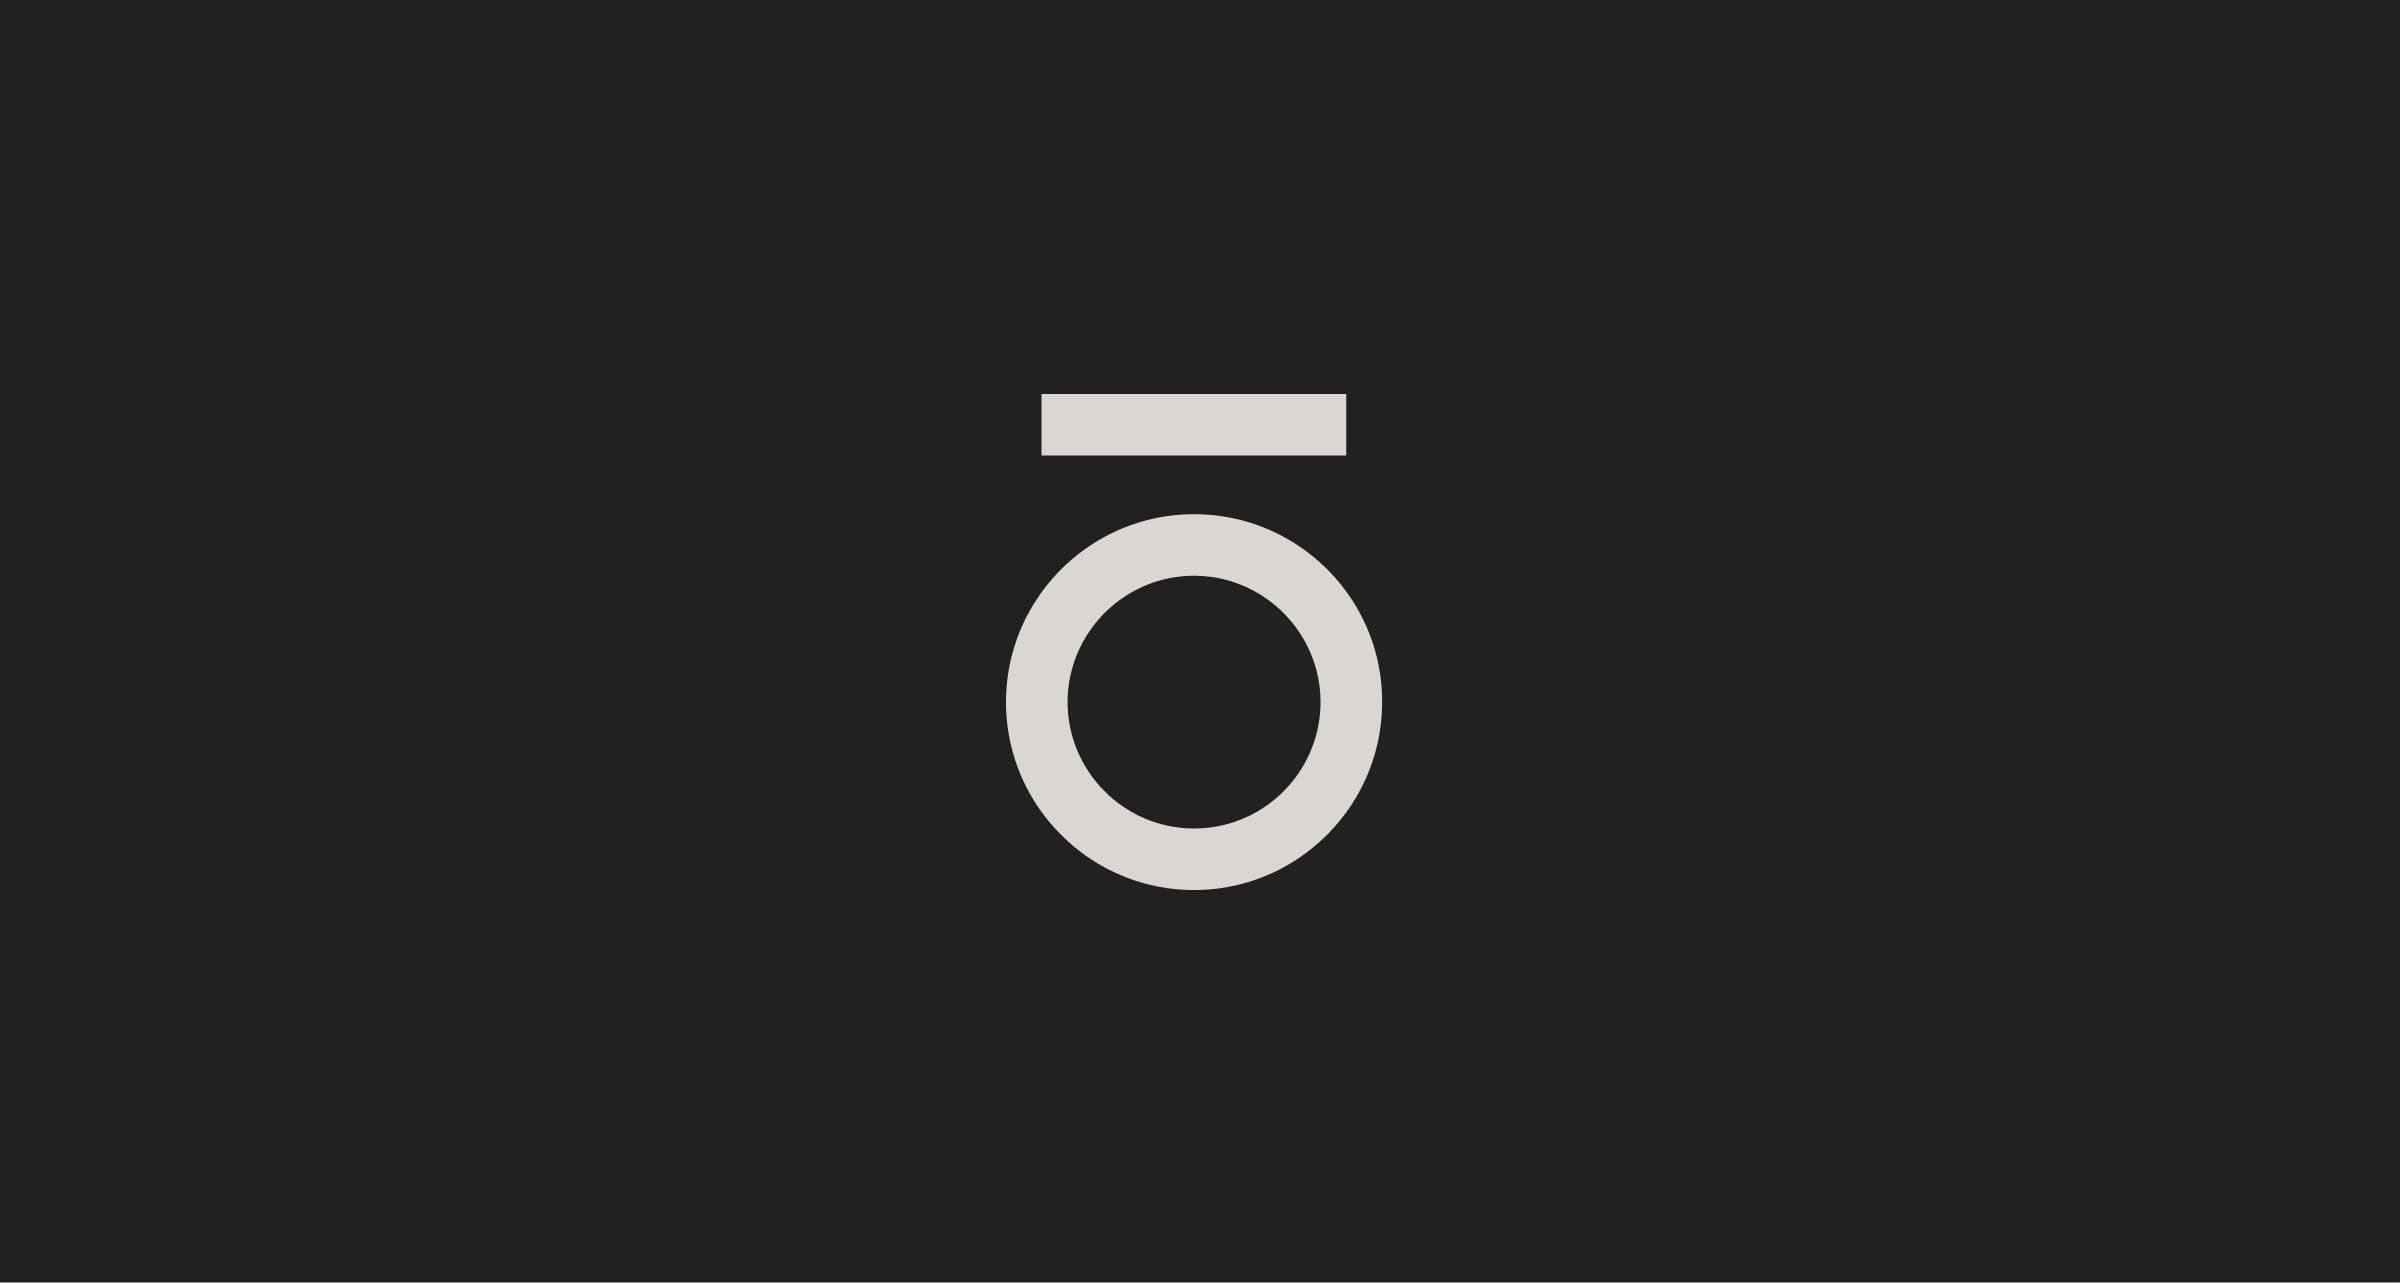 An image of ōLiv's new O brand icon.